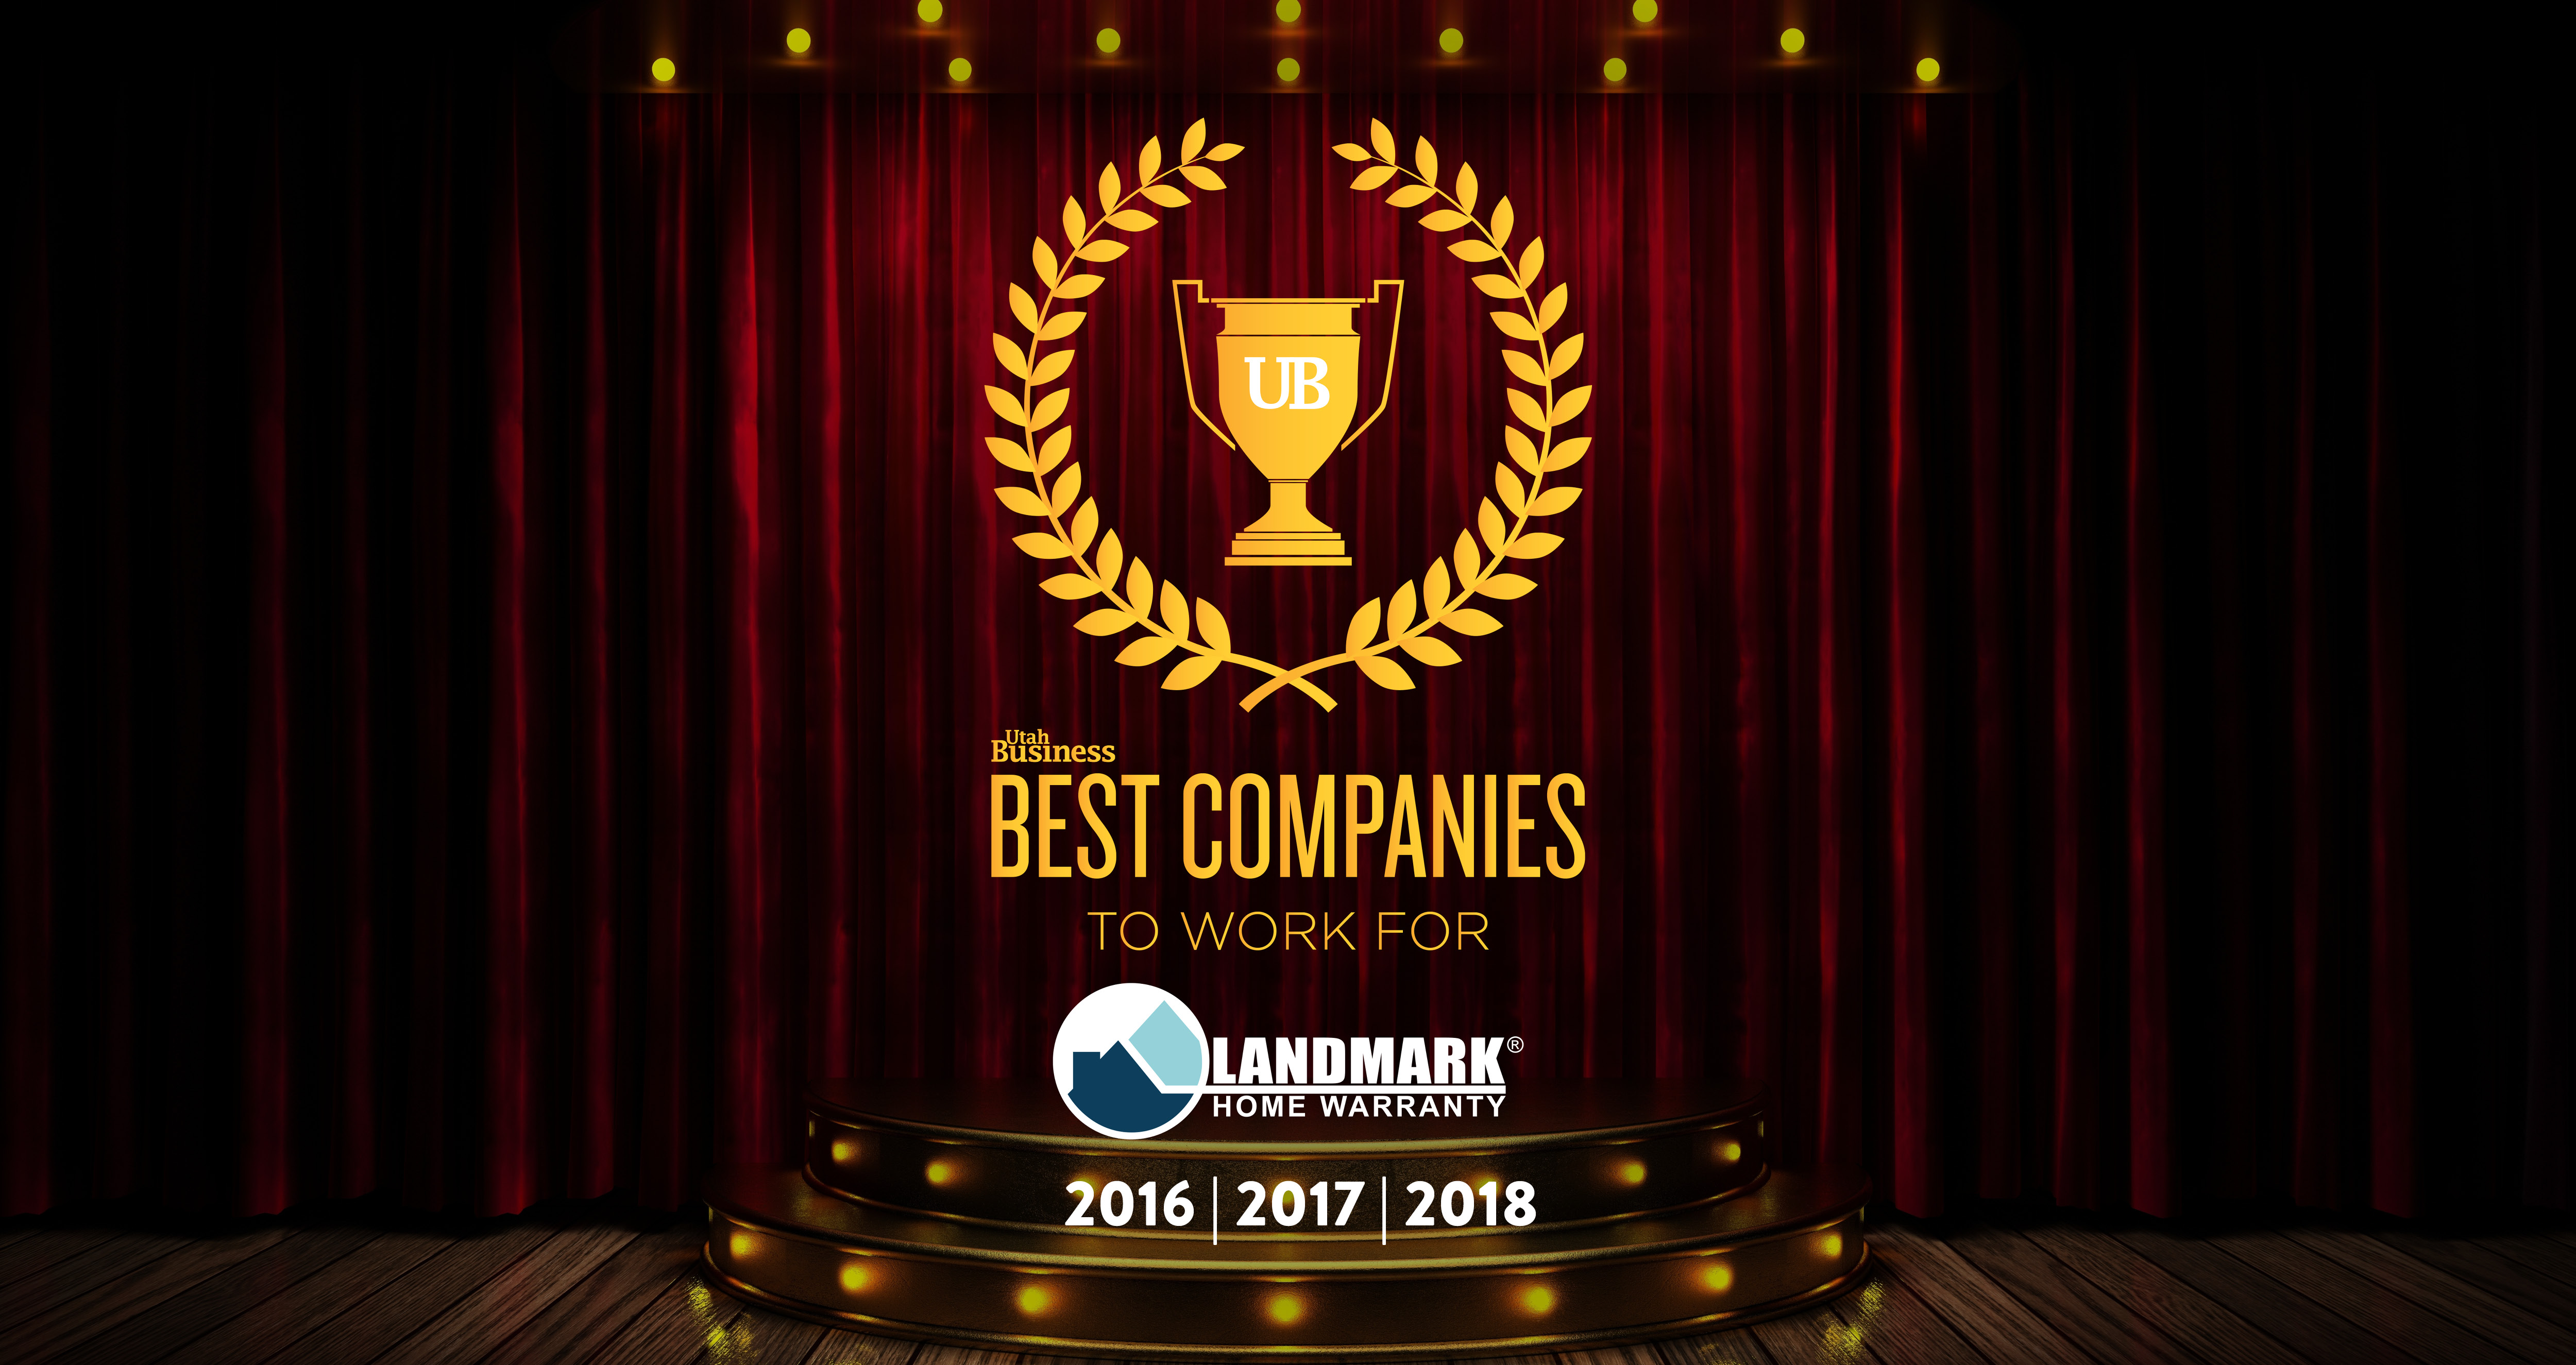 Landmark Home Warranty was rated one of the best companies to work for in Utah for the third year in a row.